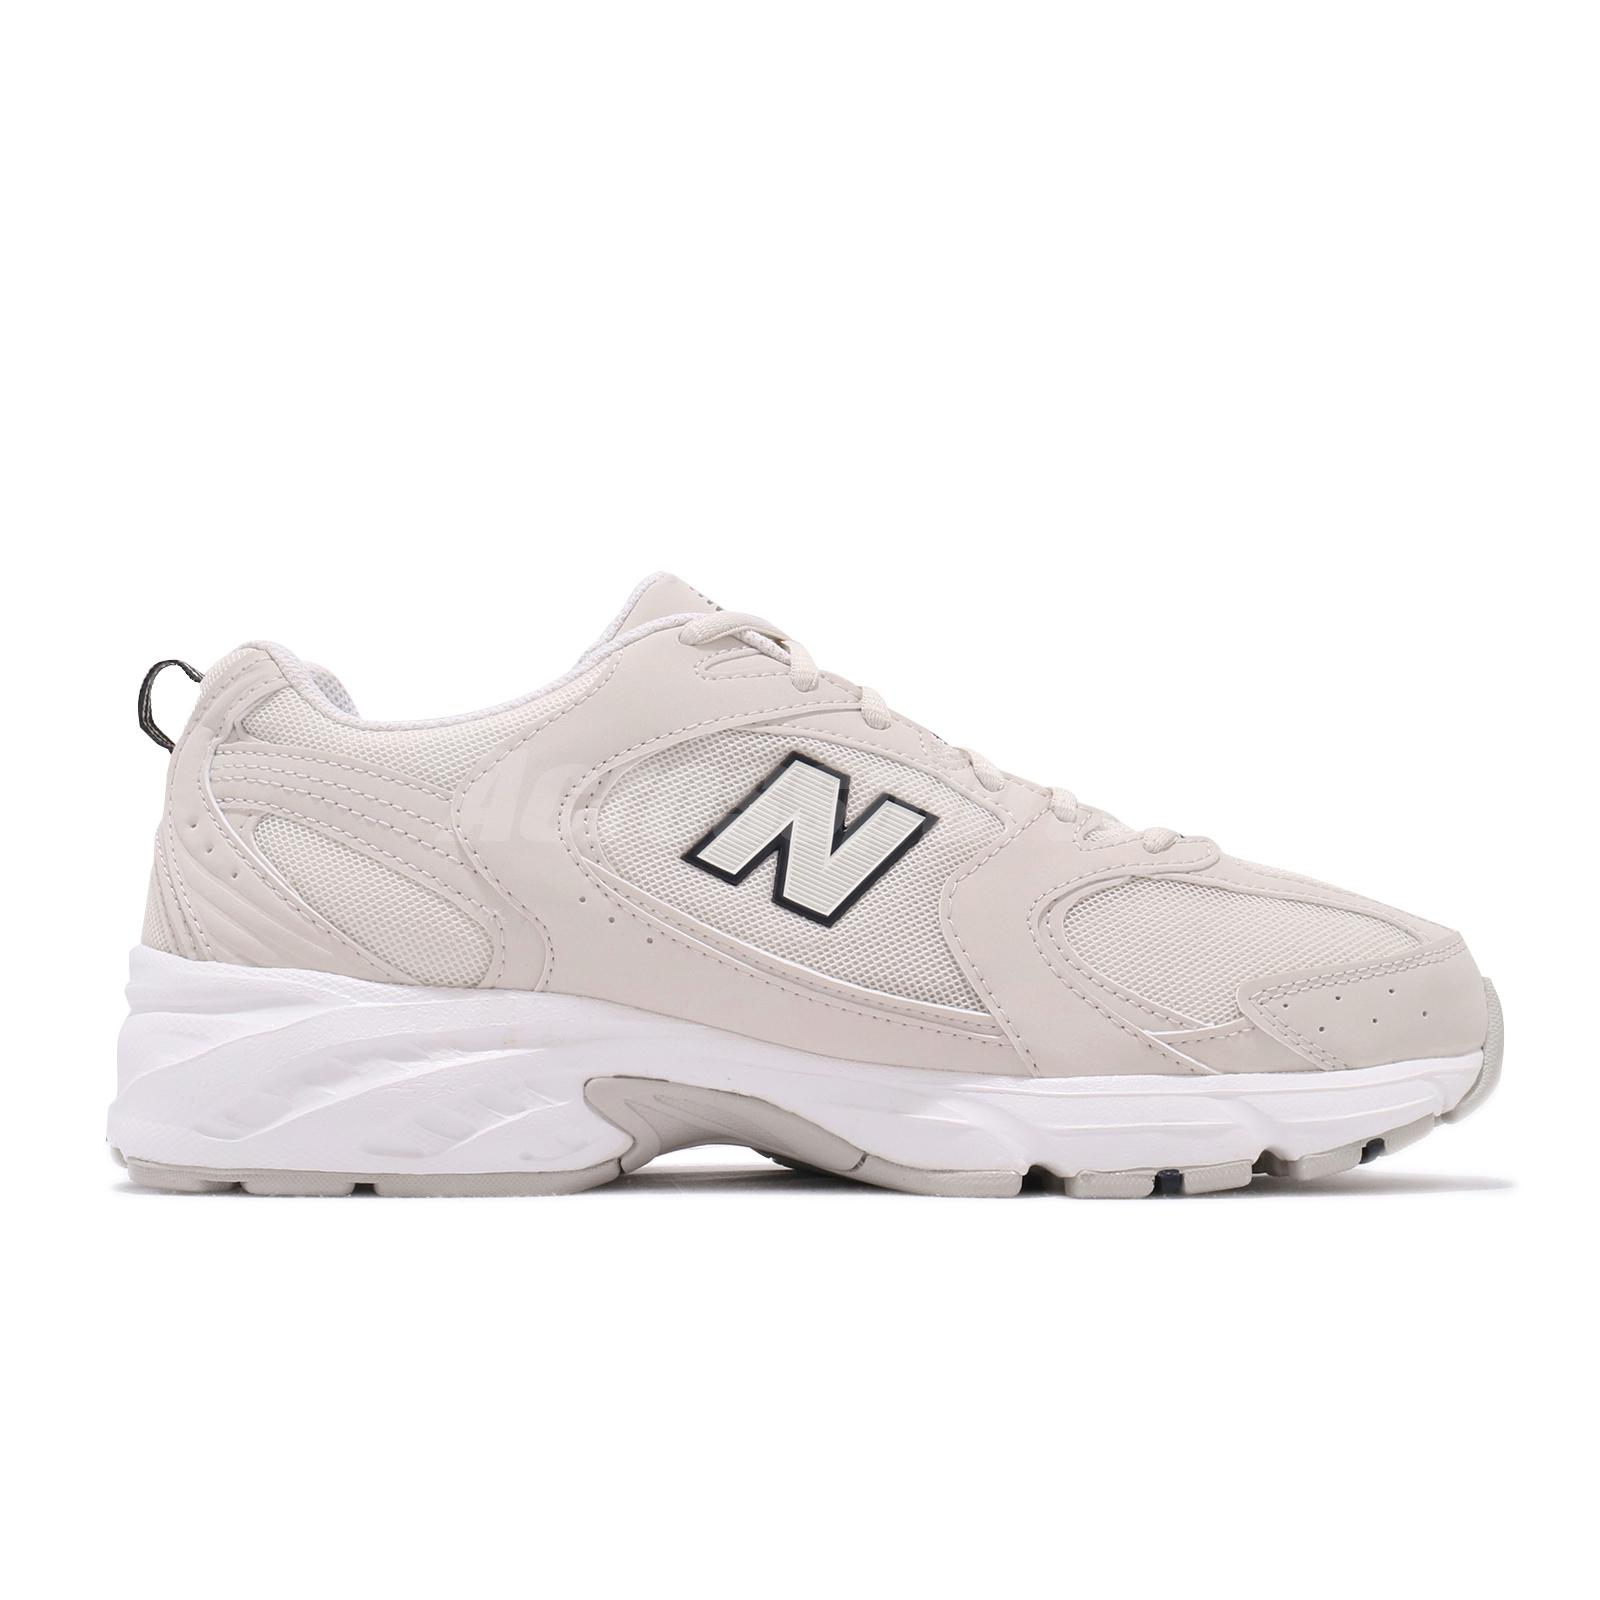 Details about New Balance 530 V2 Retro Khaki ABZORB Men Women Classic  Running Shoes MR530SH D